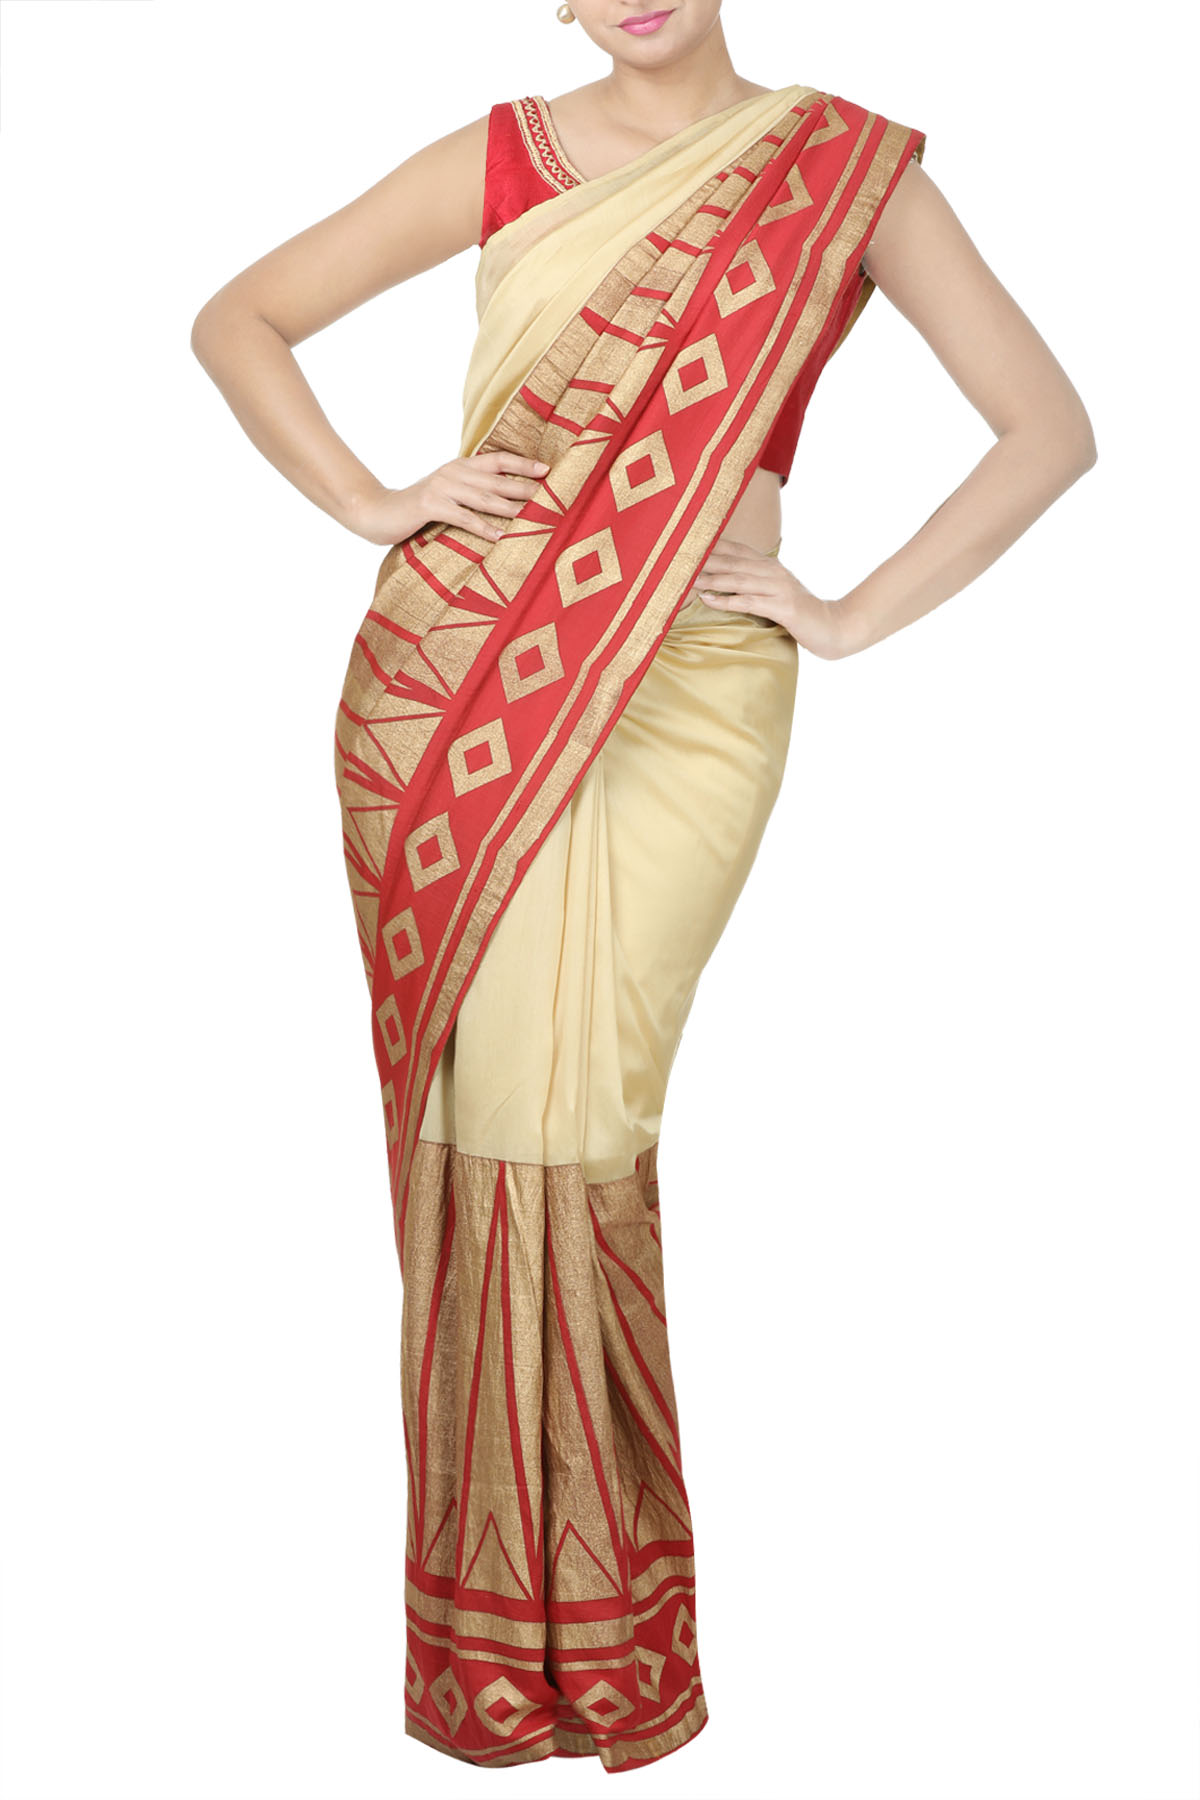 Beige & Red Screen Printed Saree with Red Embroidered Blouse